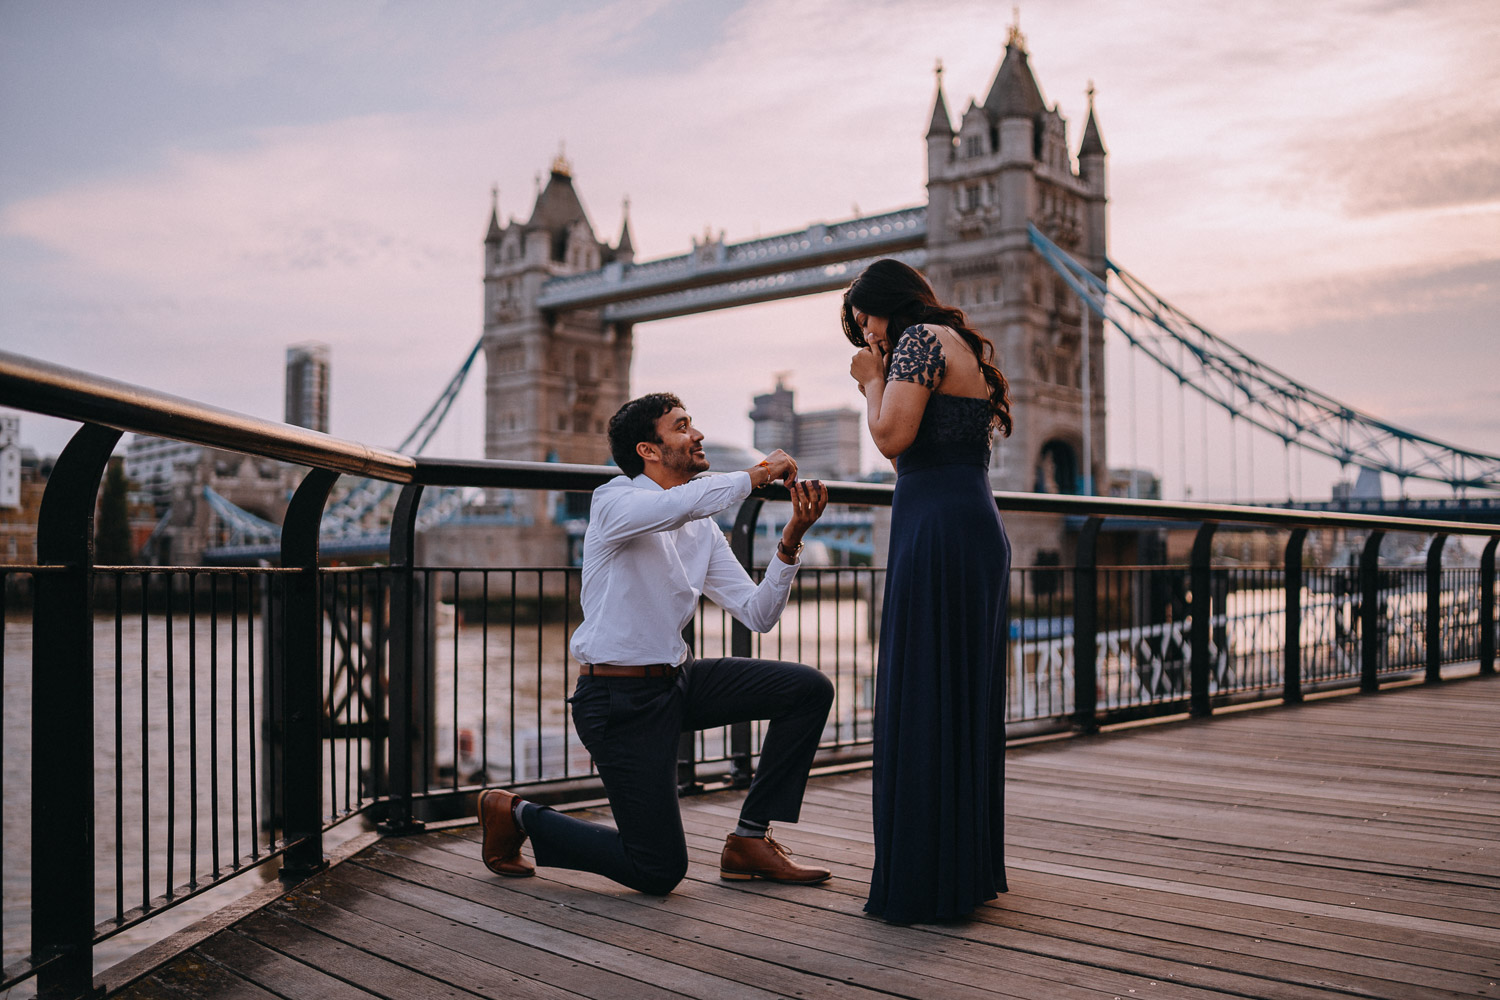 Surprise Proposal Photographer in London